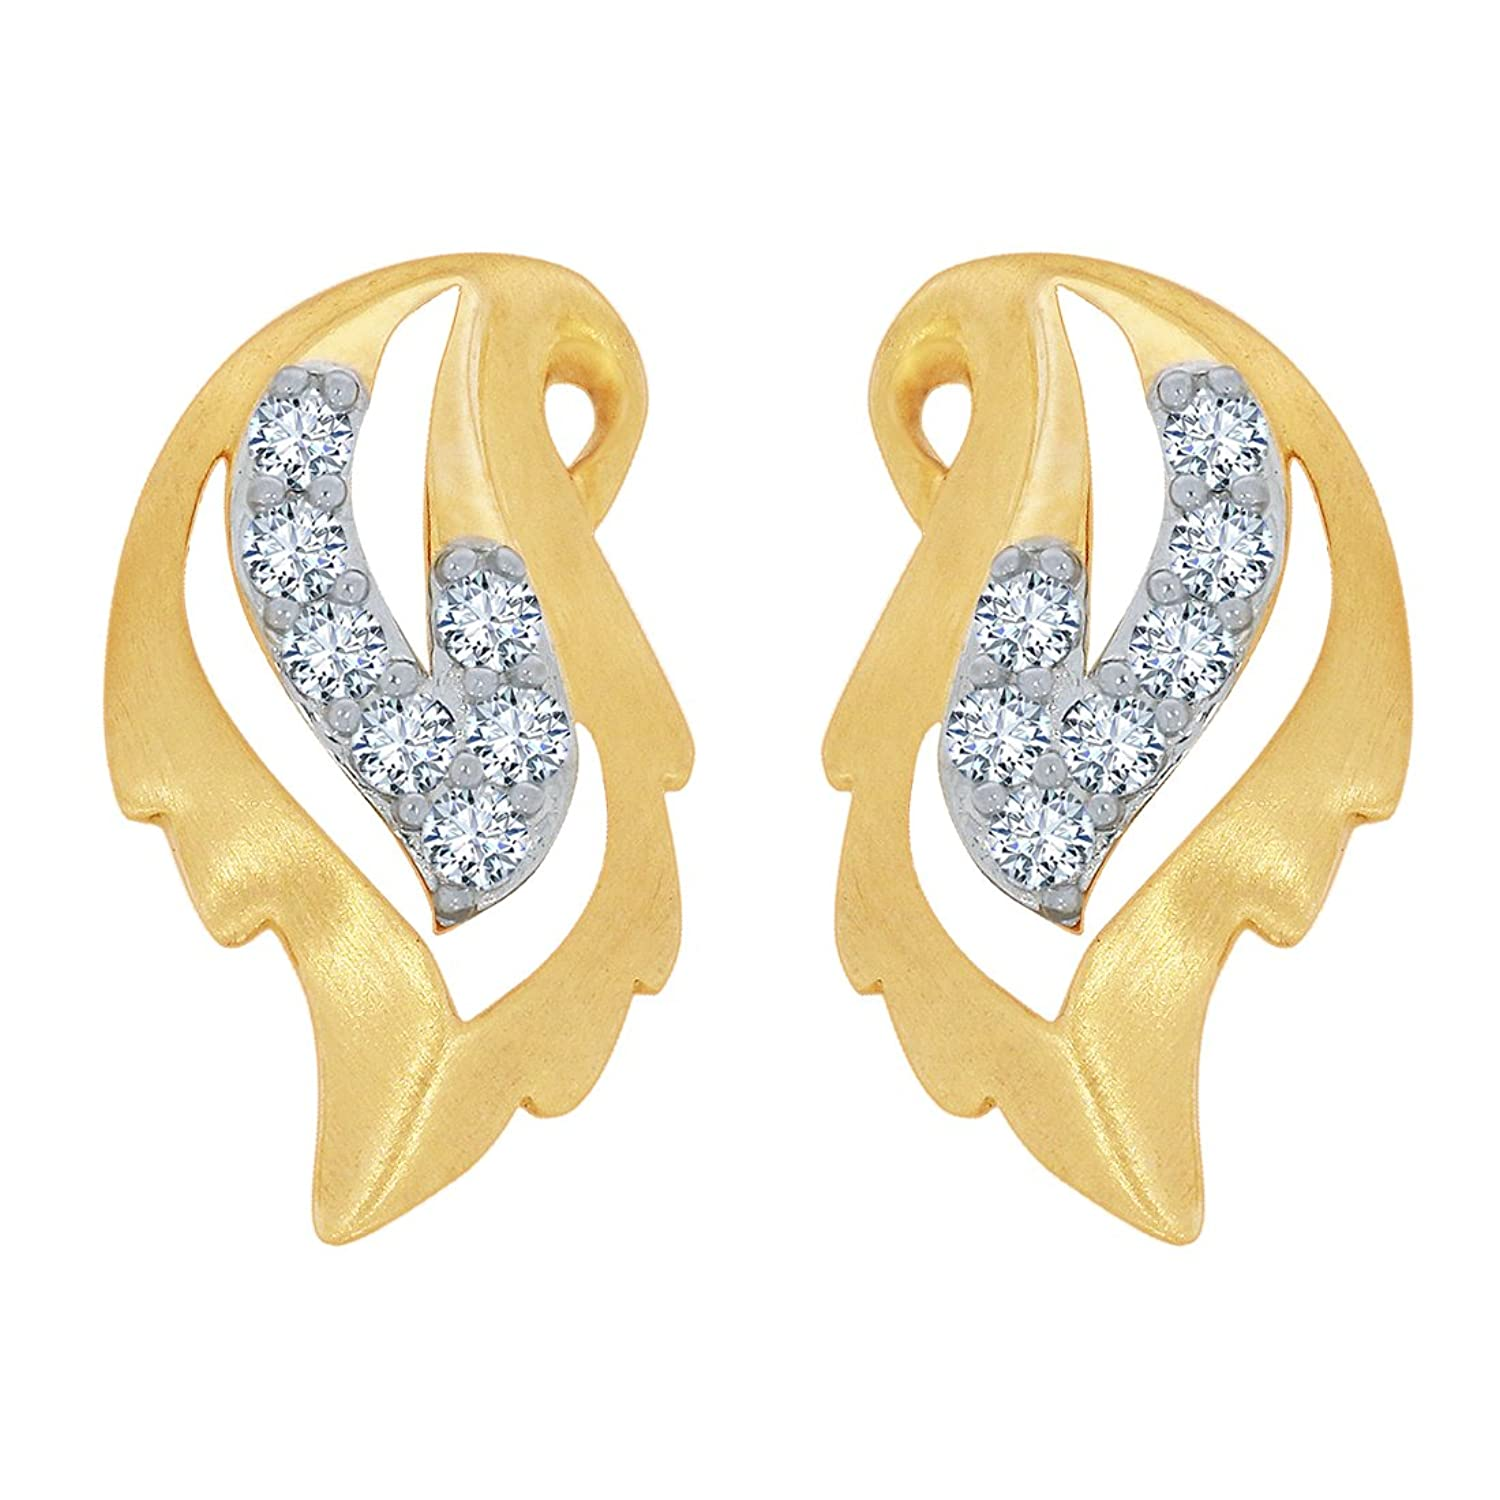 Upto 10% Off On 22K Gold & Diamond Jewelry By Amazon | Kalyan Jewellers 18KT Yellow Gold and Diamond Stud Earring for Women @ Rs.20,925